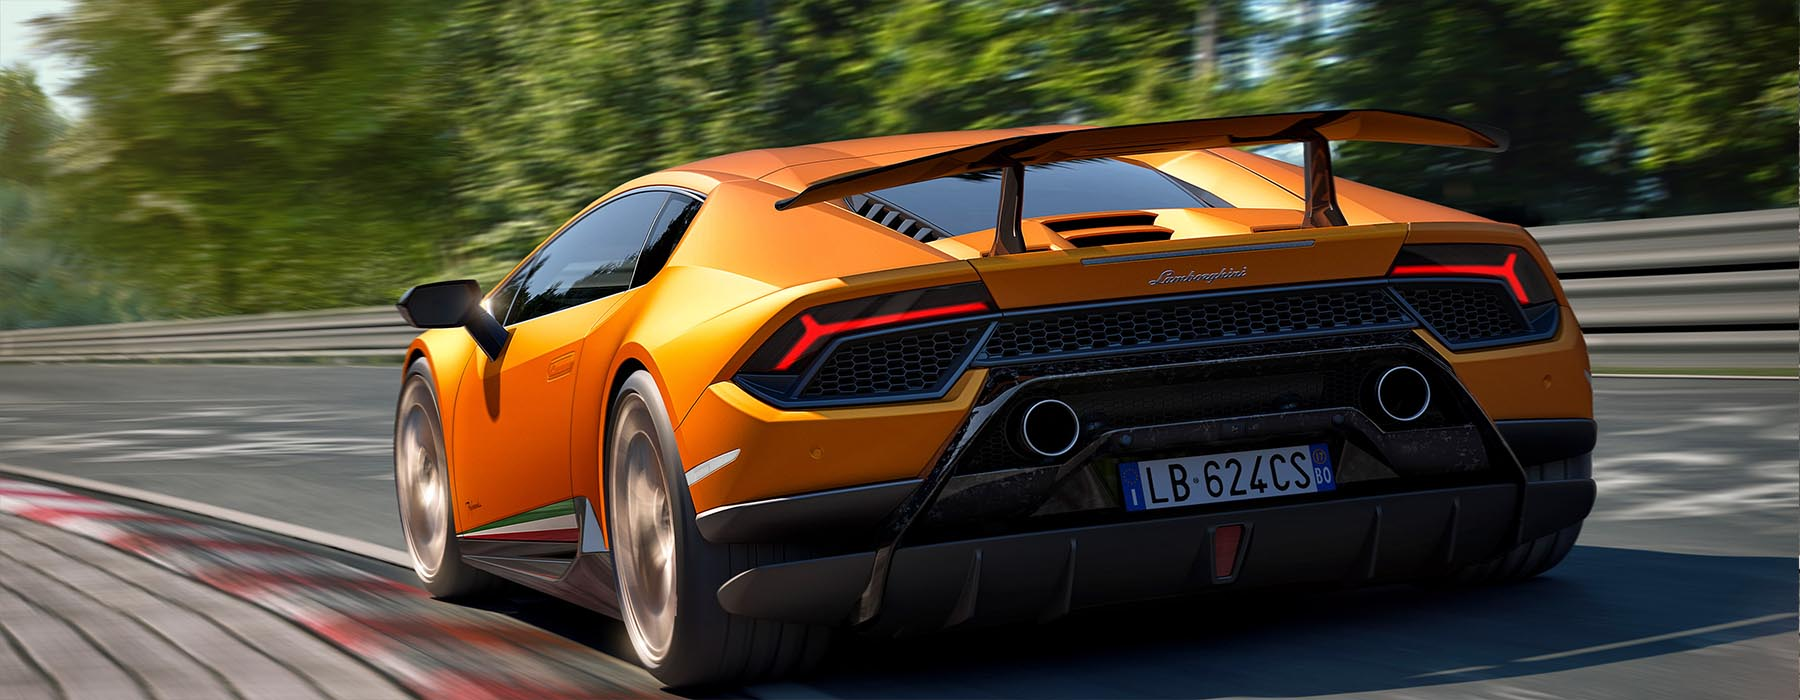 drive a lamborghini huracan performance on a racetrack at exotics racing